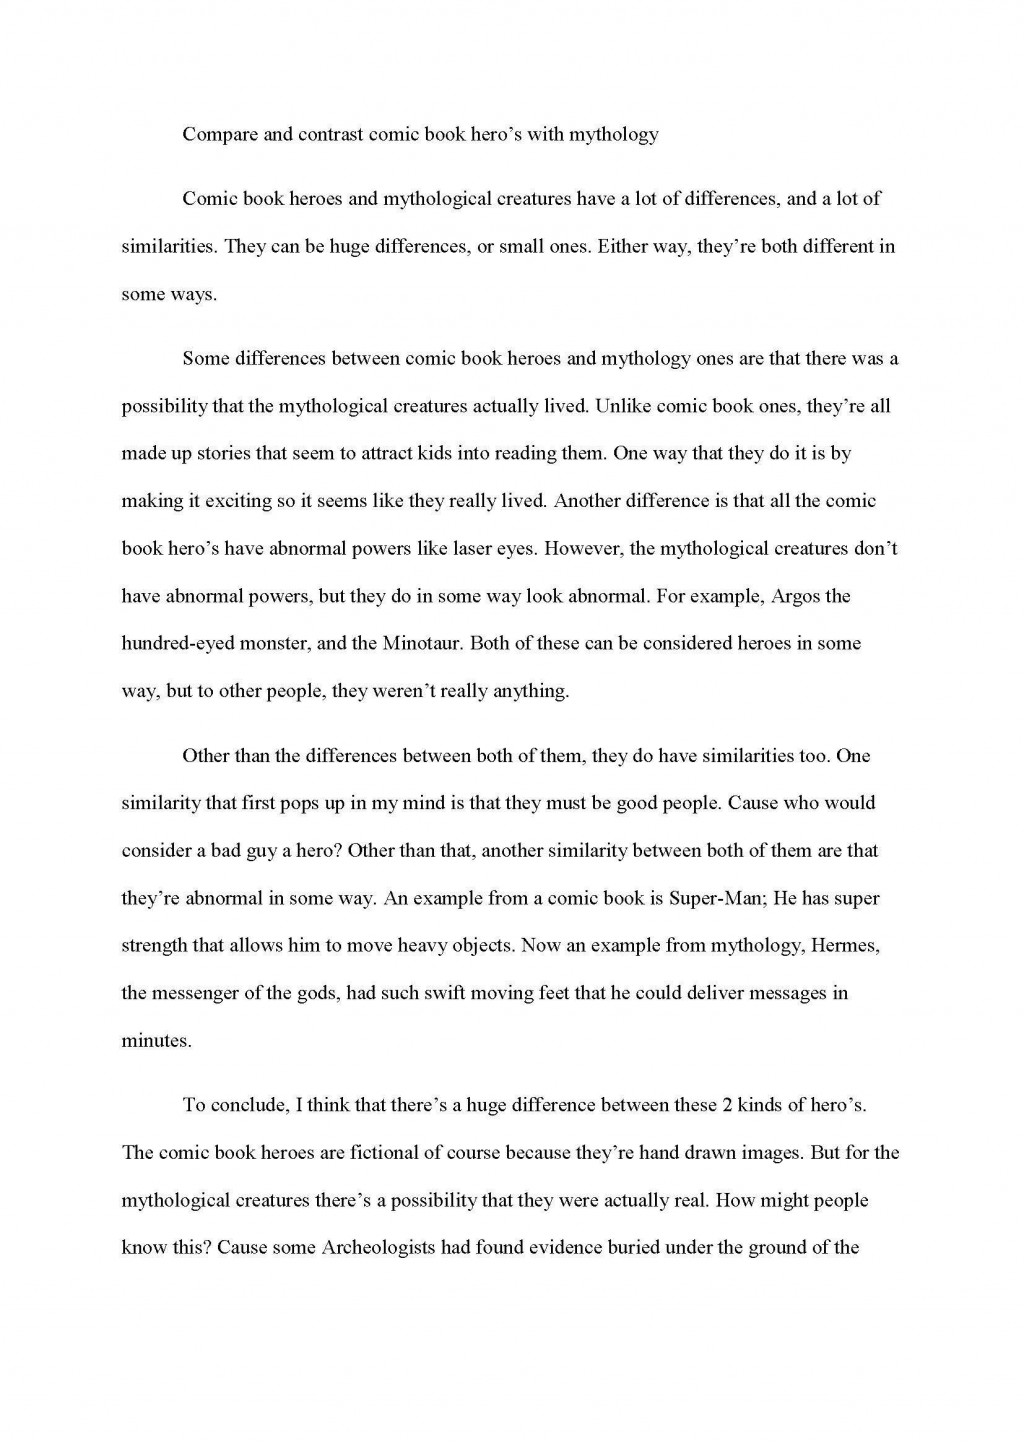 001 Exceptional Compare And Contrast Essay Example College Picture  For Topic OutlineLarge